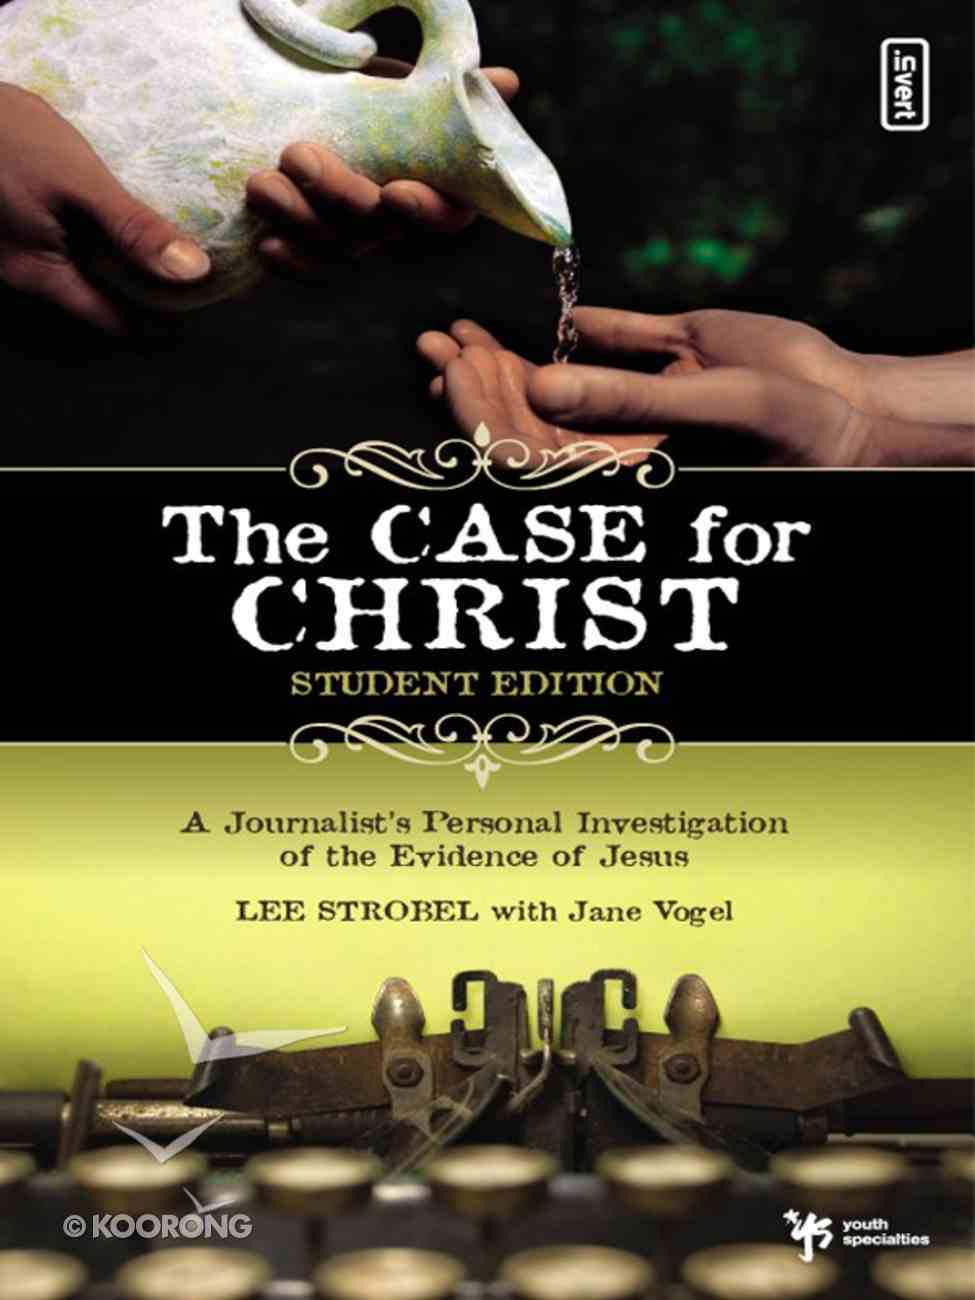 The Case For Christ - Student Edition (6 Pack) eBook